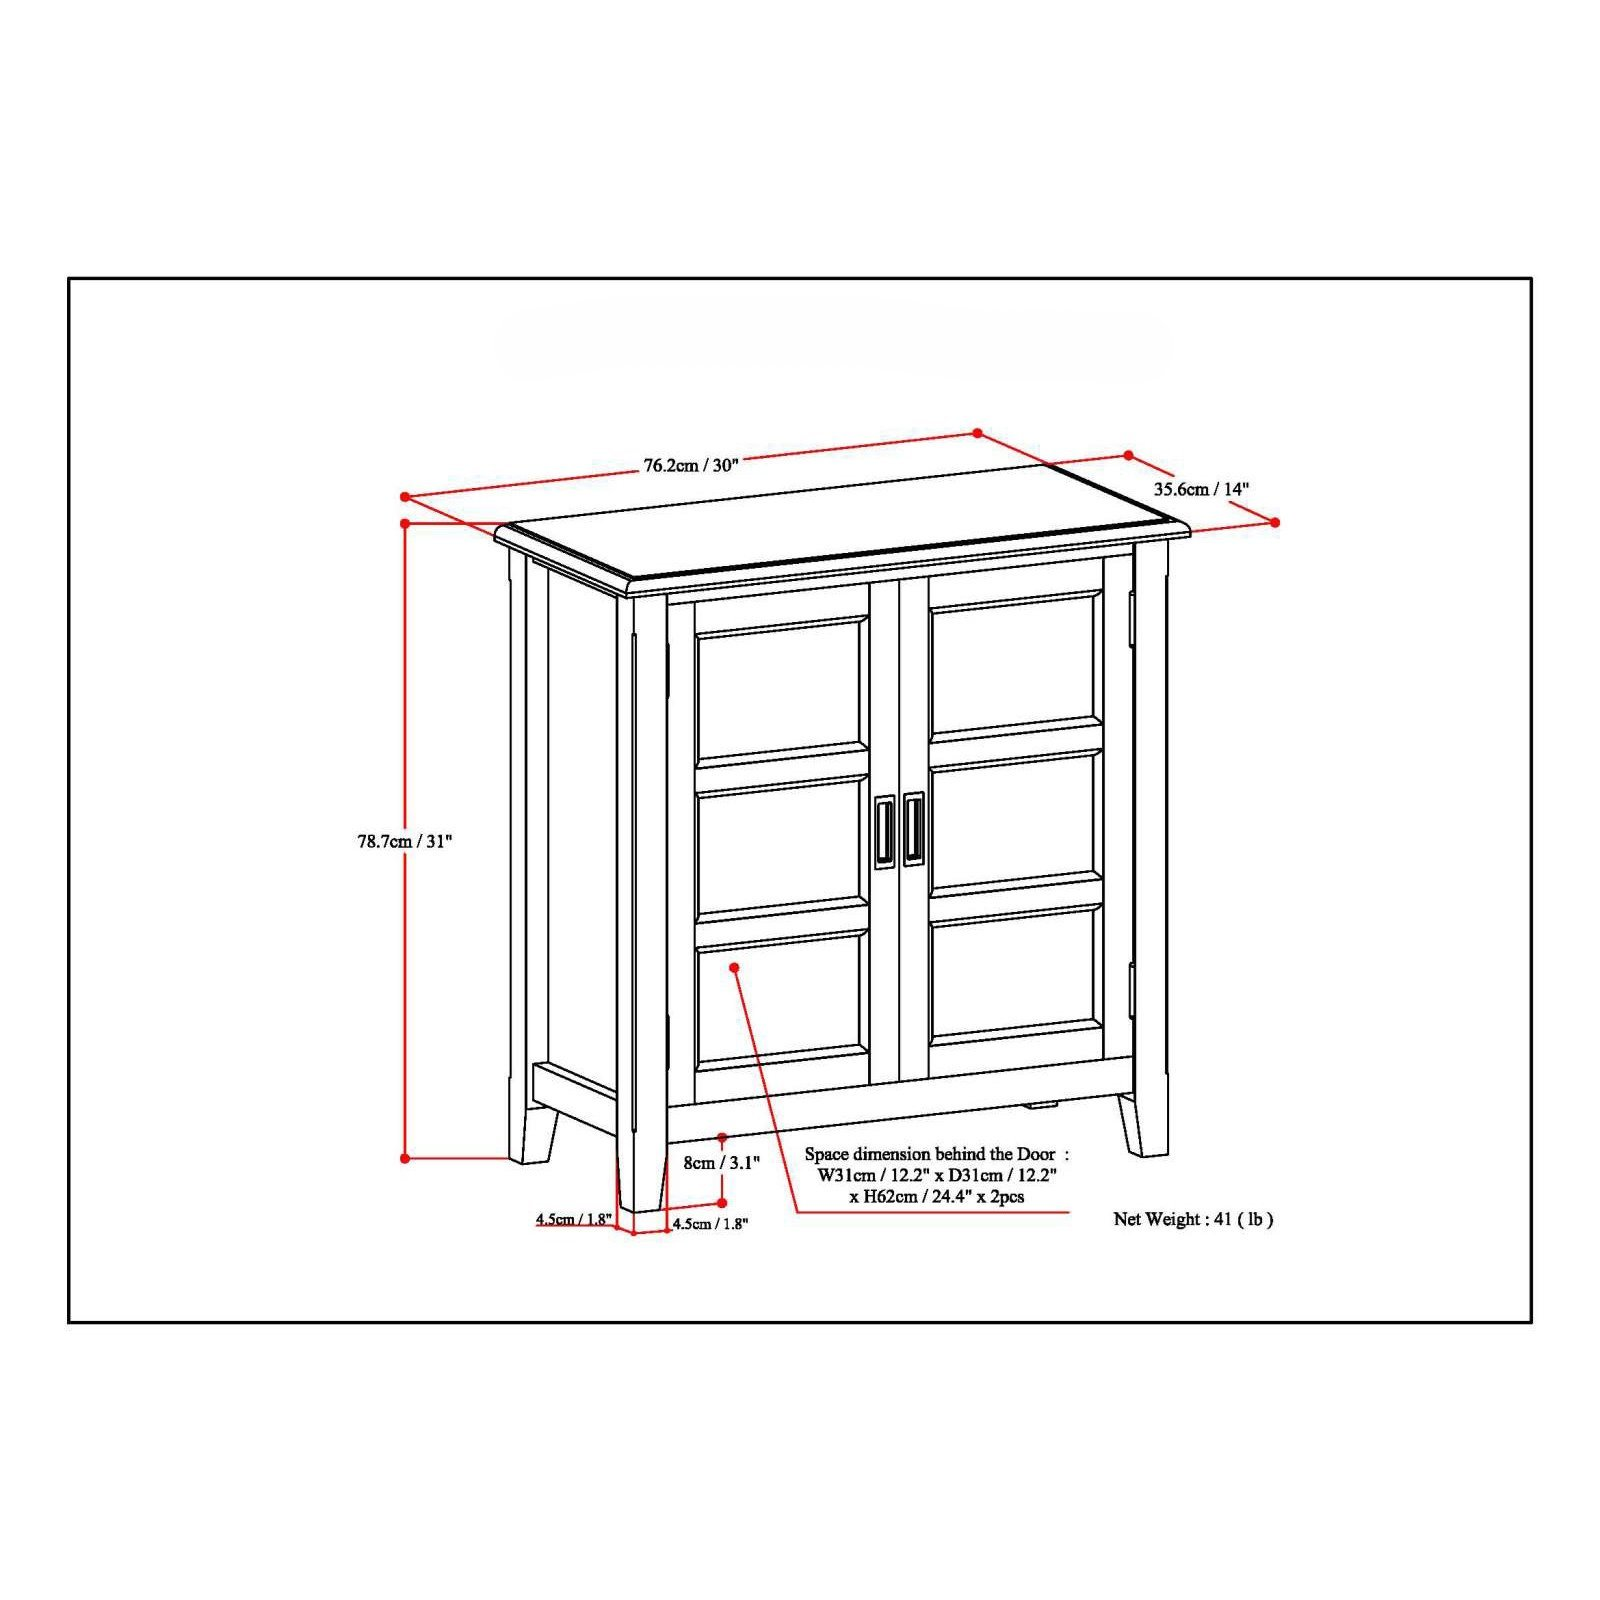 Bookshelves/ Storage Cabinet Traditional, Transitional Portland Espresso (3AXCBUR-005) with 2 Panel Doors and 2 Adjustable Shelves. 31 in High x 30 in Wide x 14 in Deep - Assembly Required